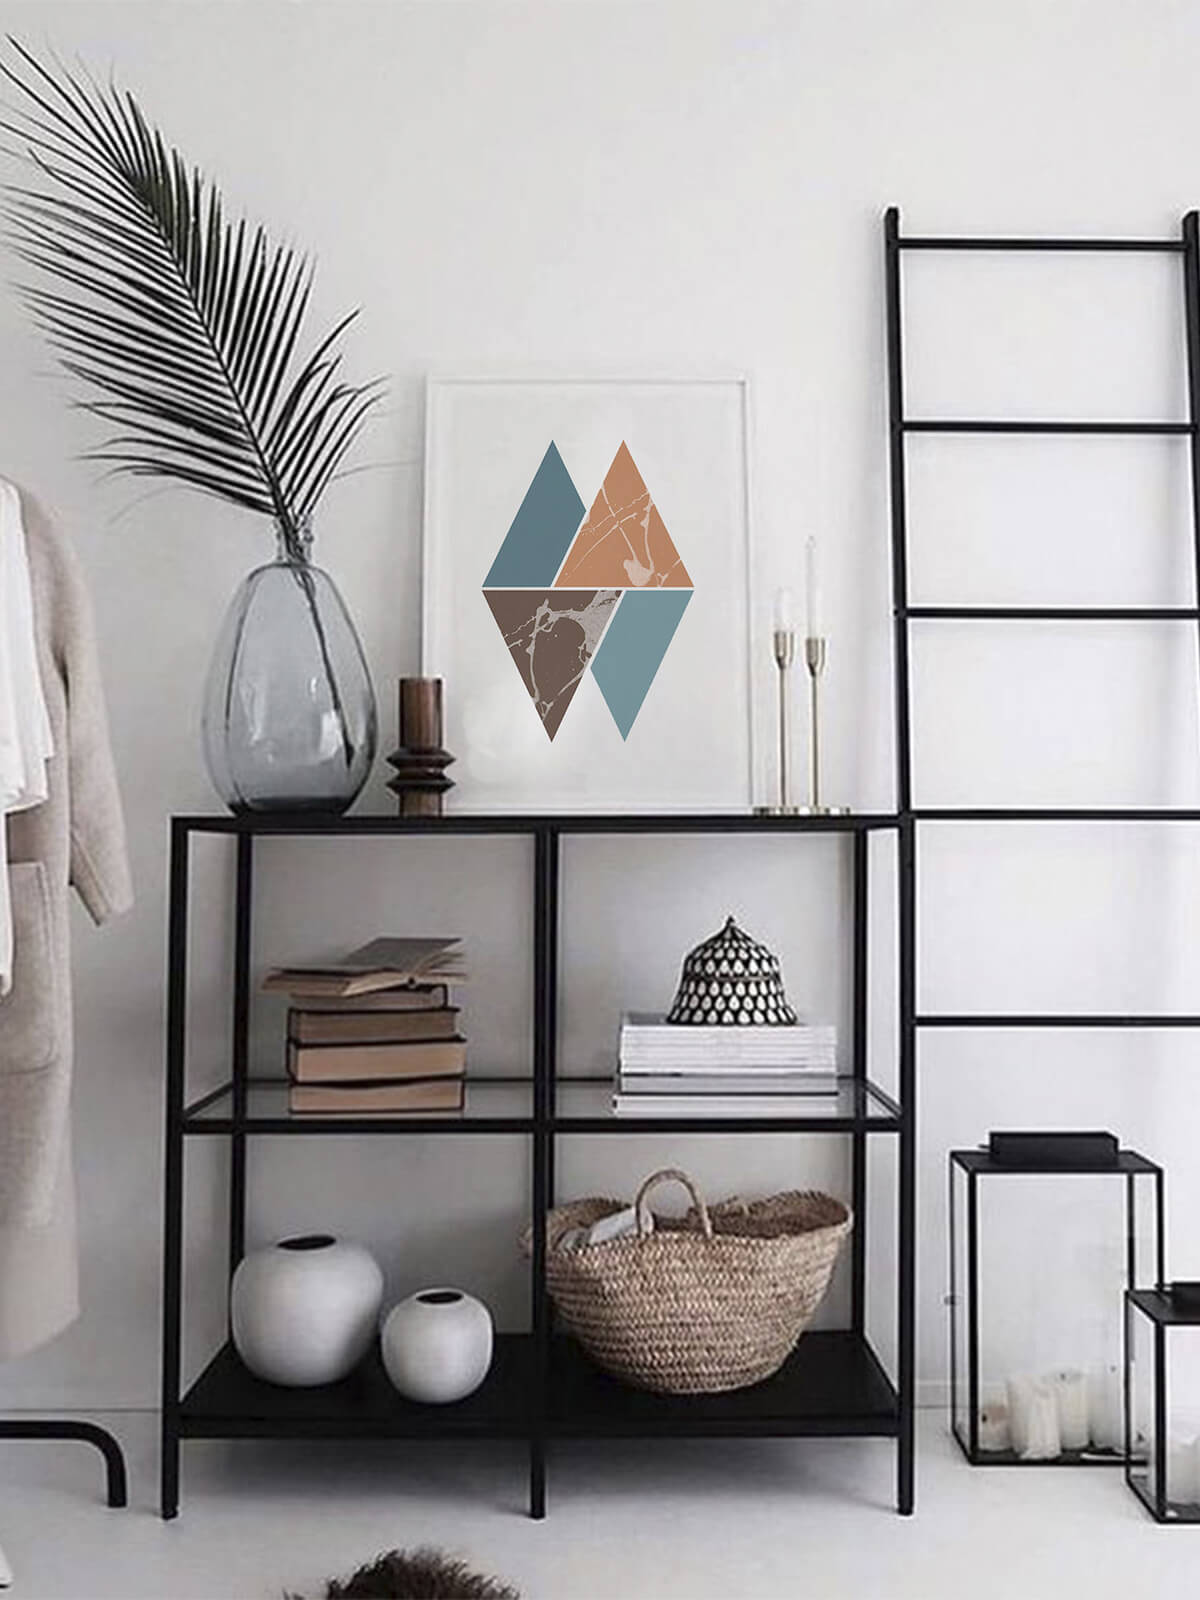 Choosing Artwork That Complements Scandinavian Decor<